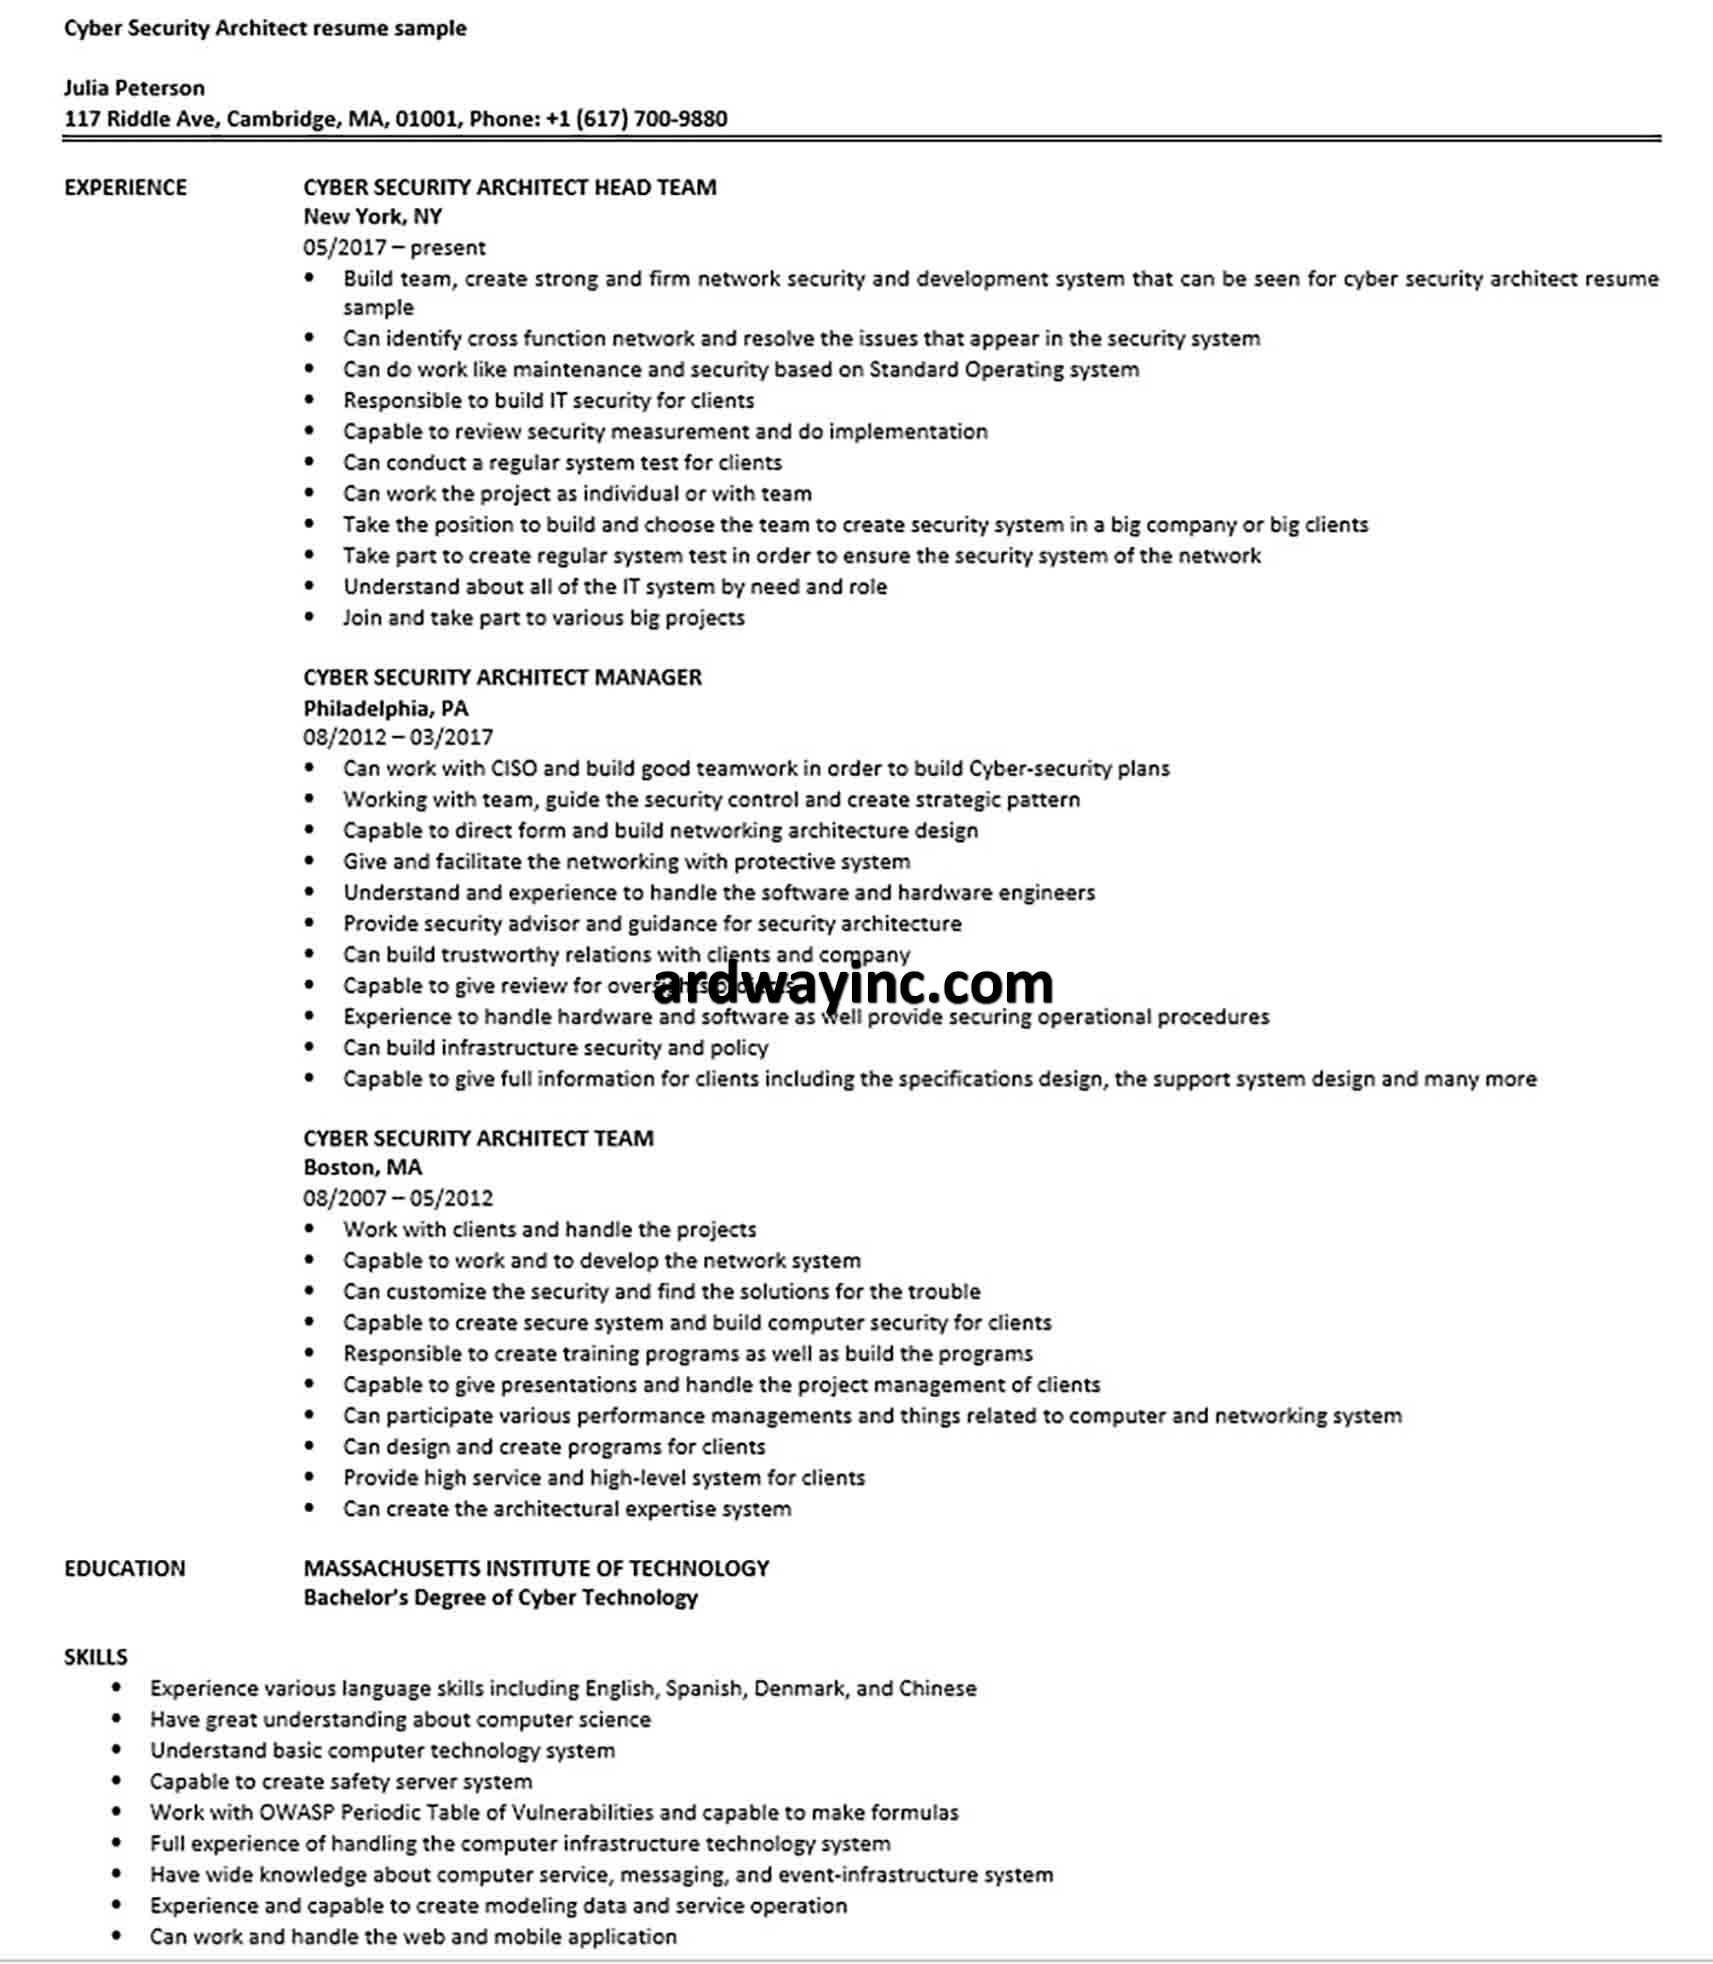 Cyber Security Architect resume sample